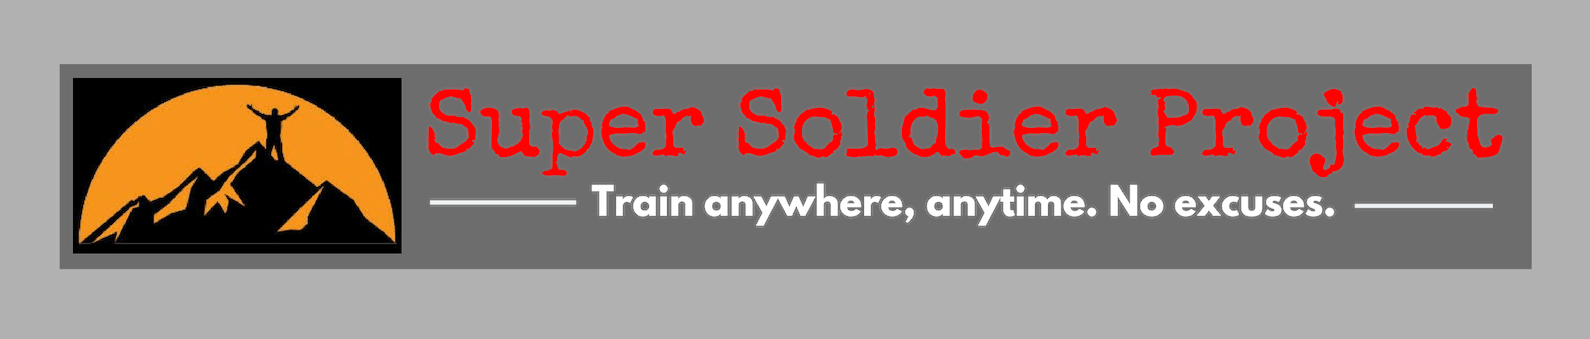 Super Soldier Project